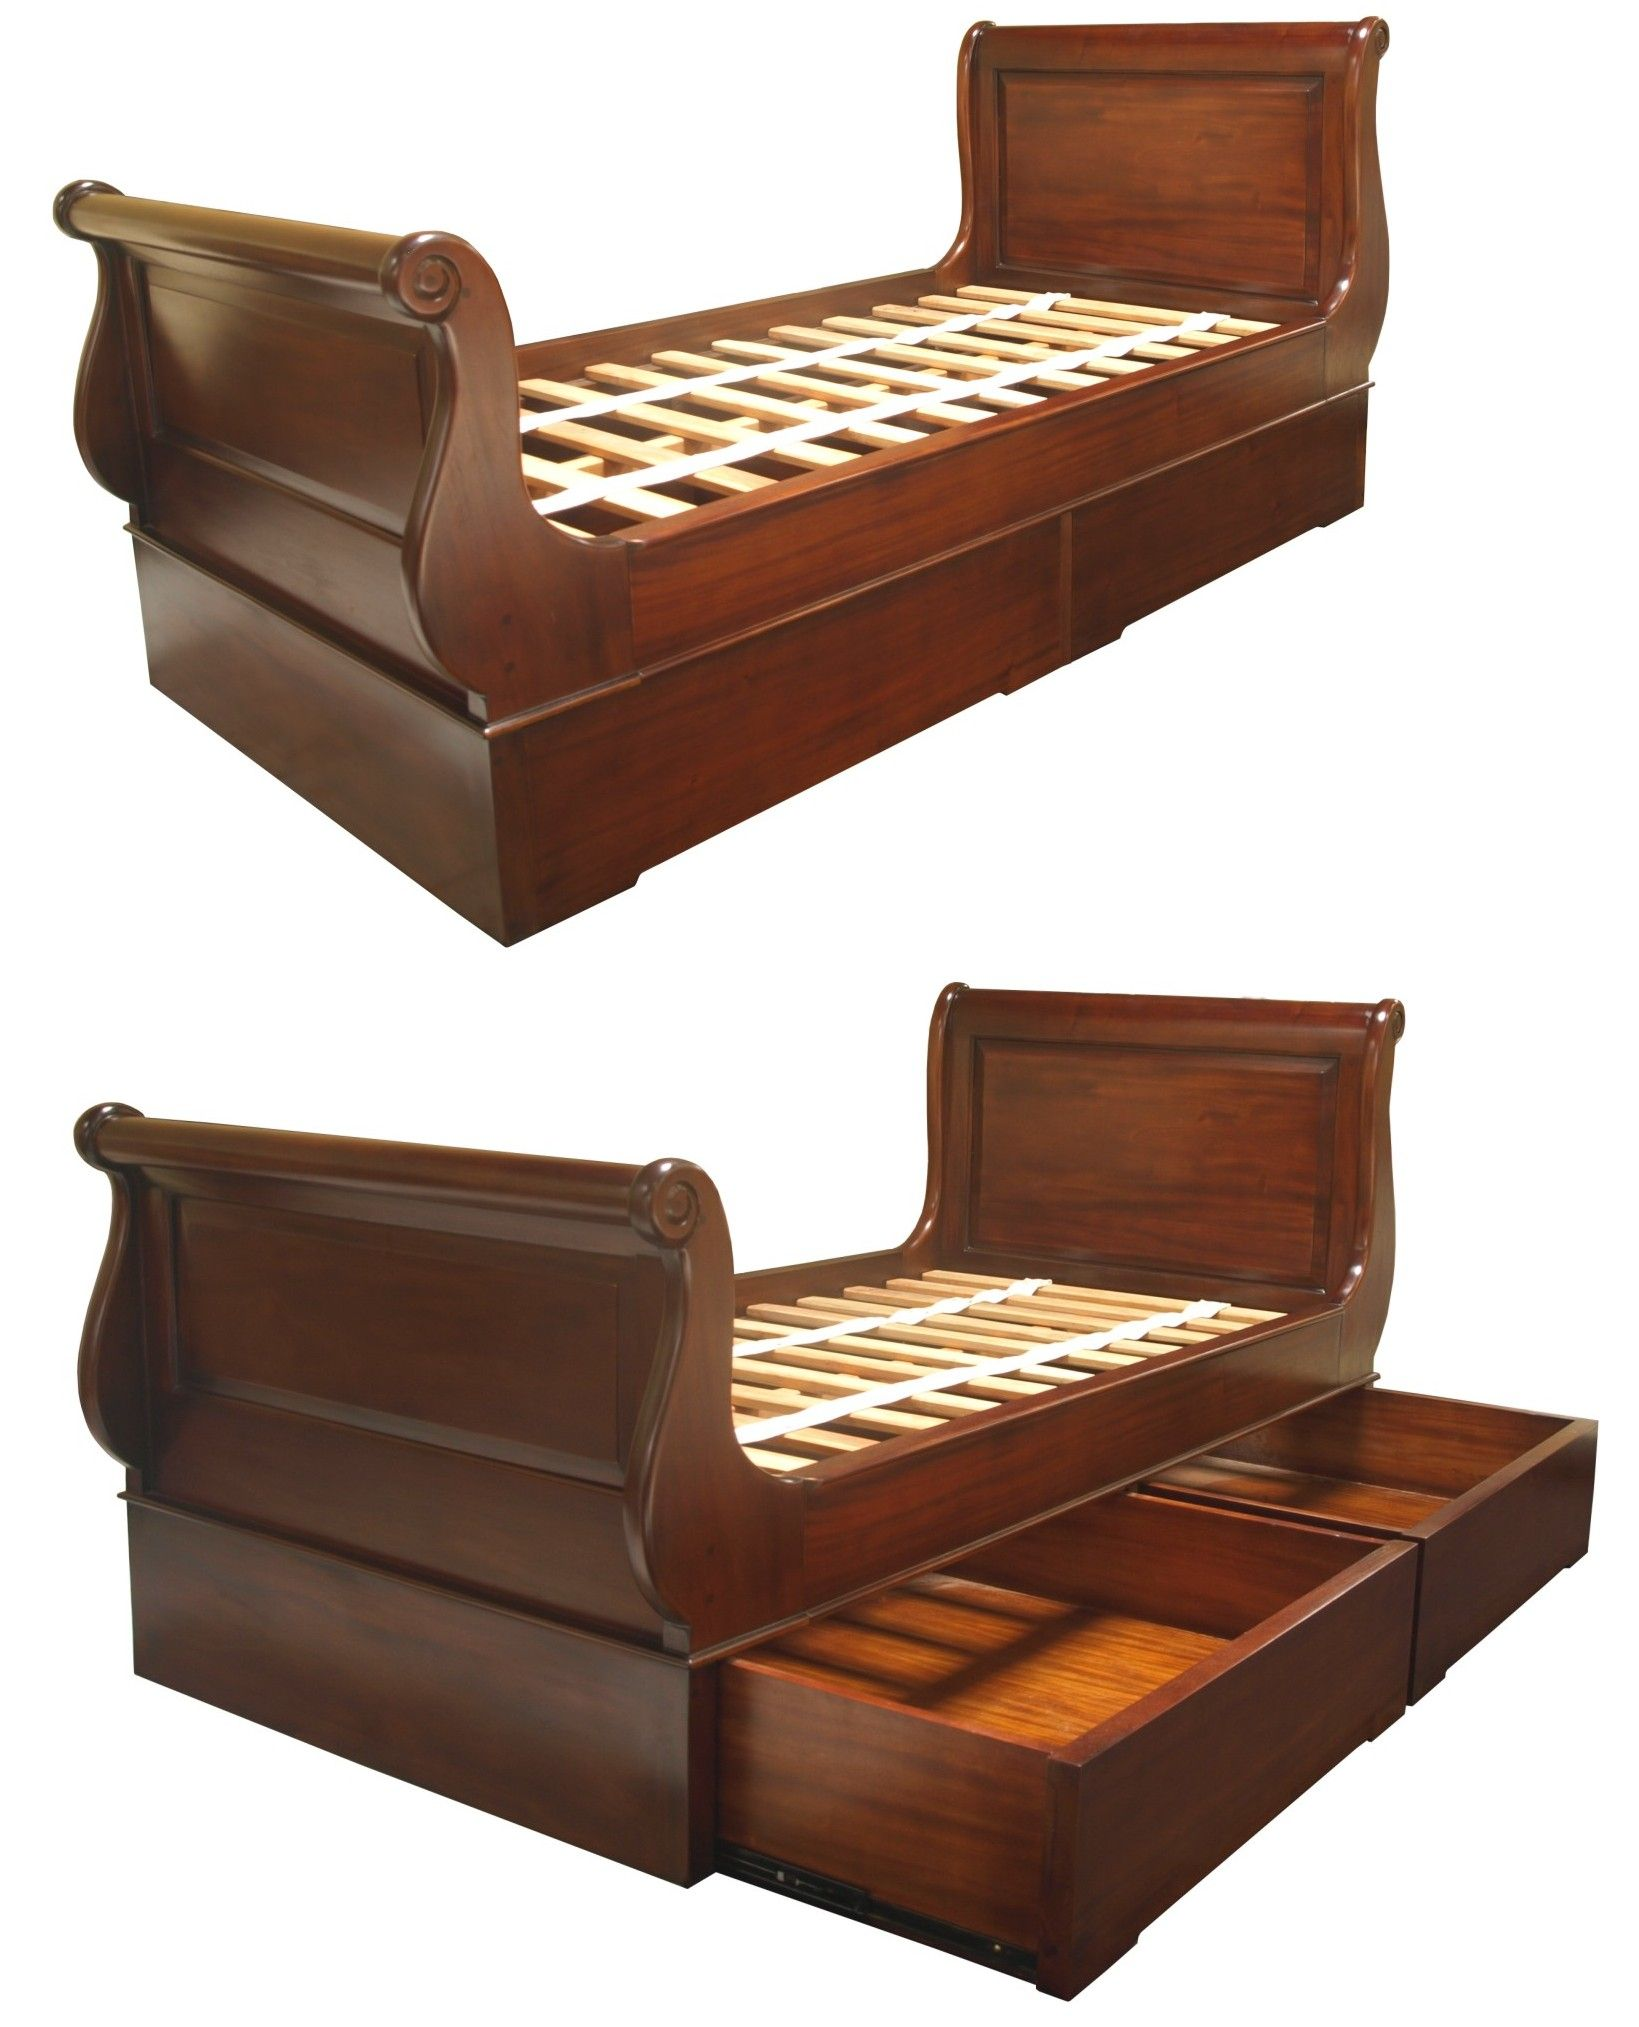 - Sleigh Beds With Storage Sleigh Beds, Bed Design, Wooden Sleigh Bed